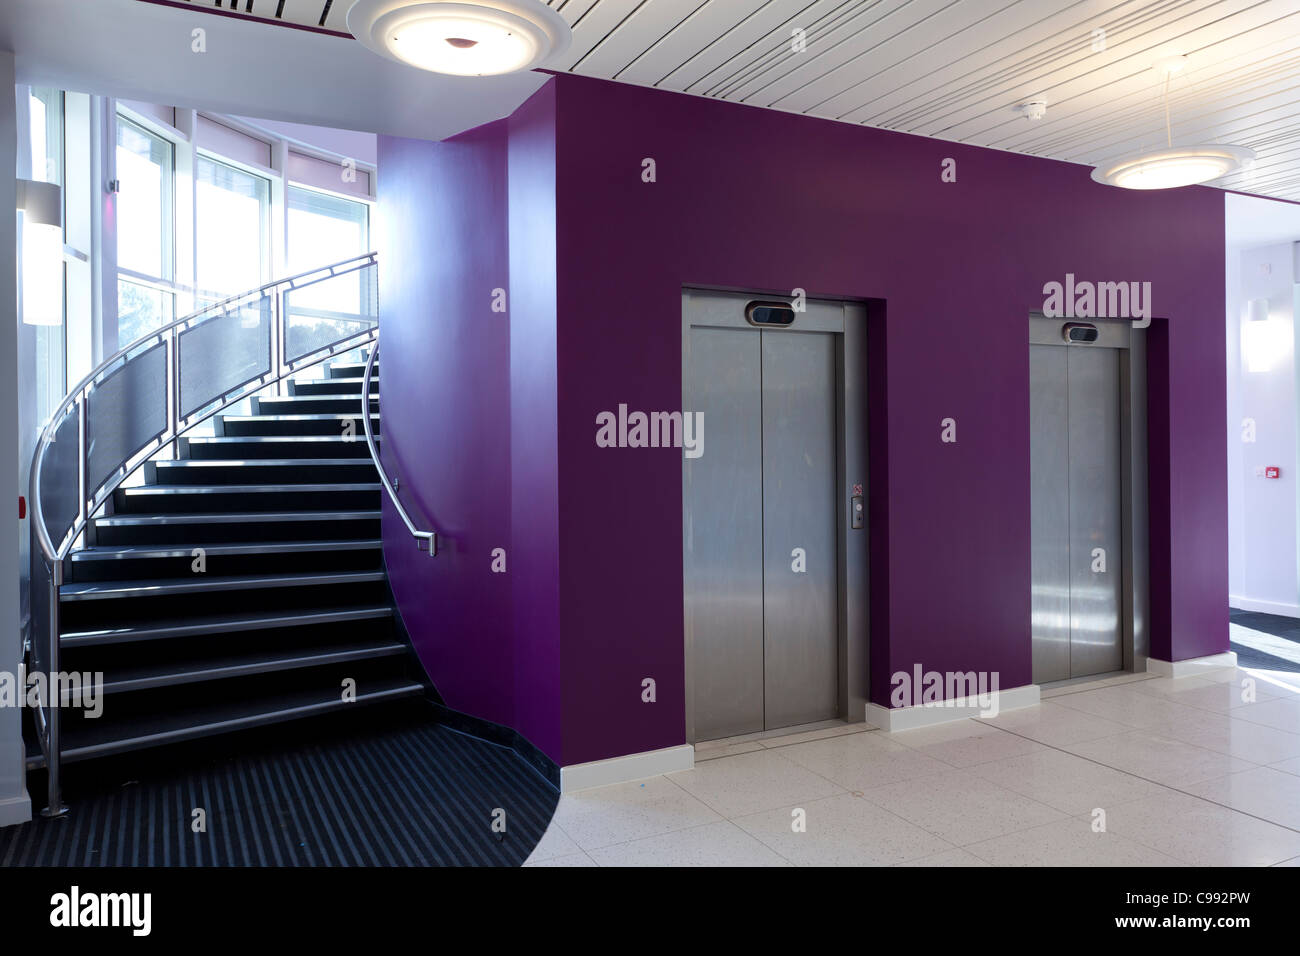 Entrance foyer and curved stair case and lift doors of the Eastpoint Centre, Southampton - Stock Image